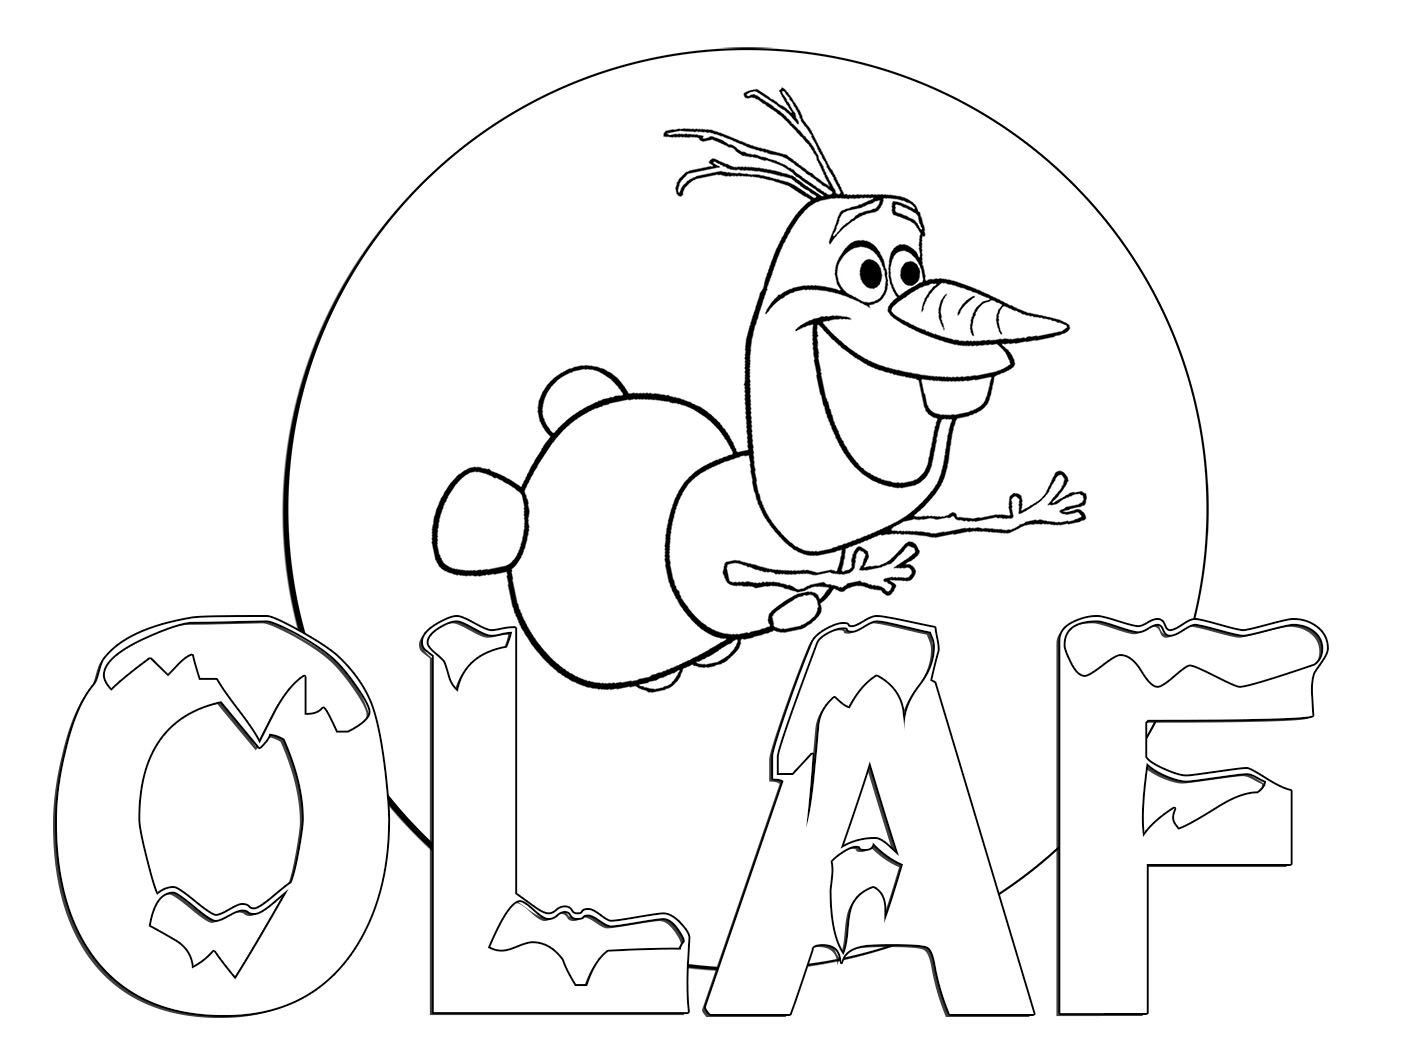 Coloring book printable frozen - Disney Frozen Olaf Coloring Pages Printable Coloring Pages Sheets For Kids Get The Latest Free Disney Frozen Olaf Coloring Pages Images Favorite Coloring